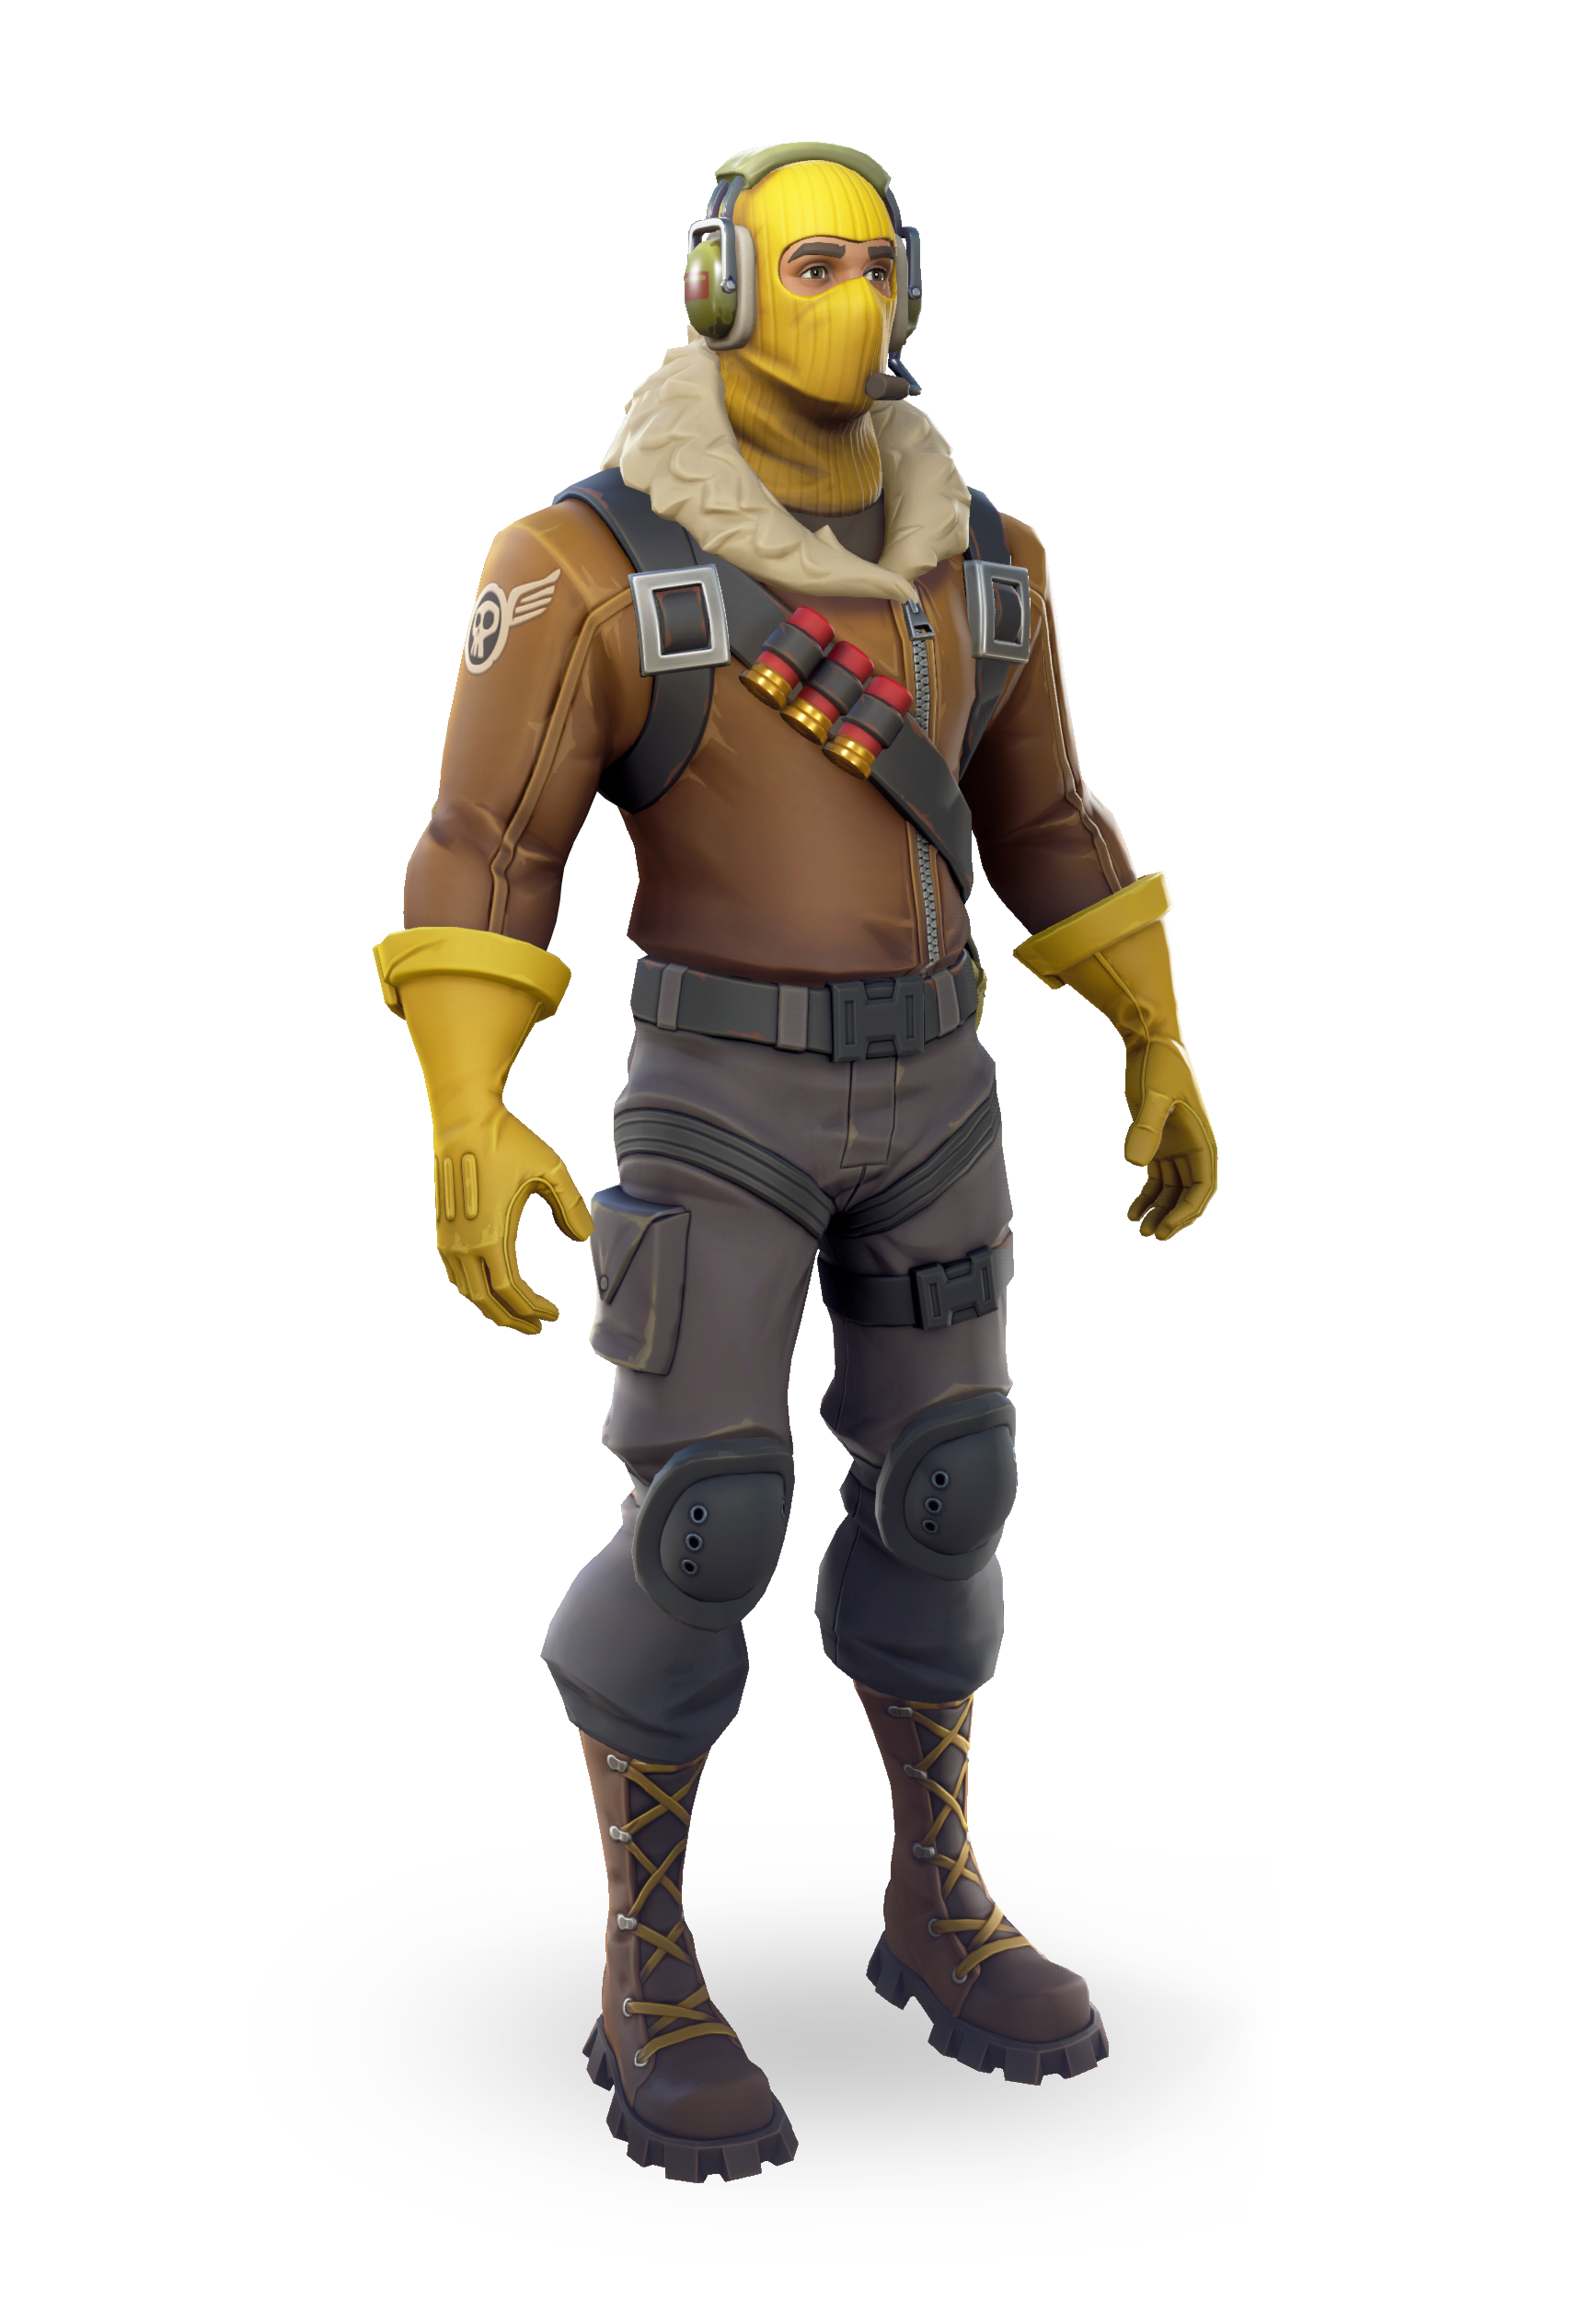 Free Fortnite Png, Download Free Clip Art, Free Clip Art on Clipart.